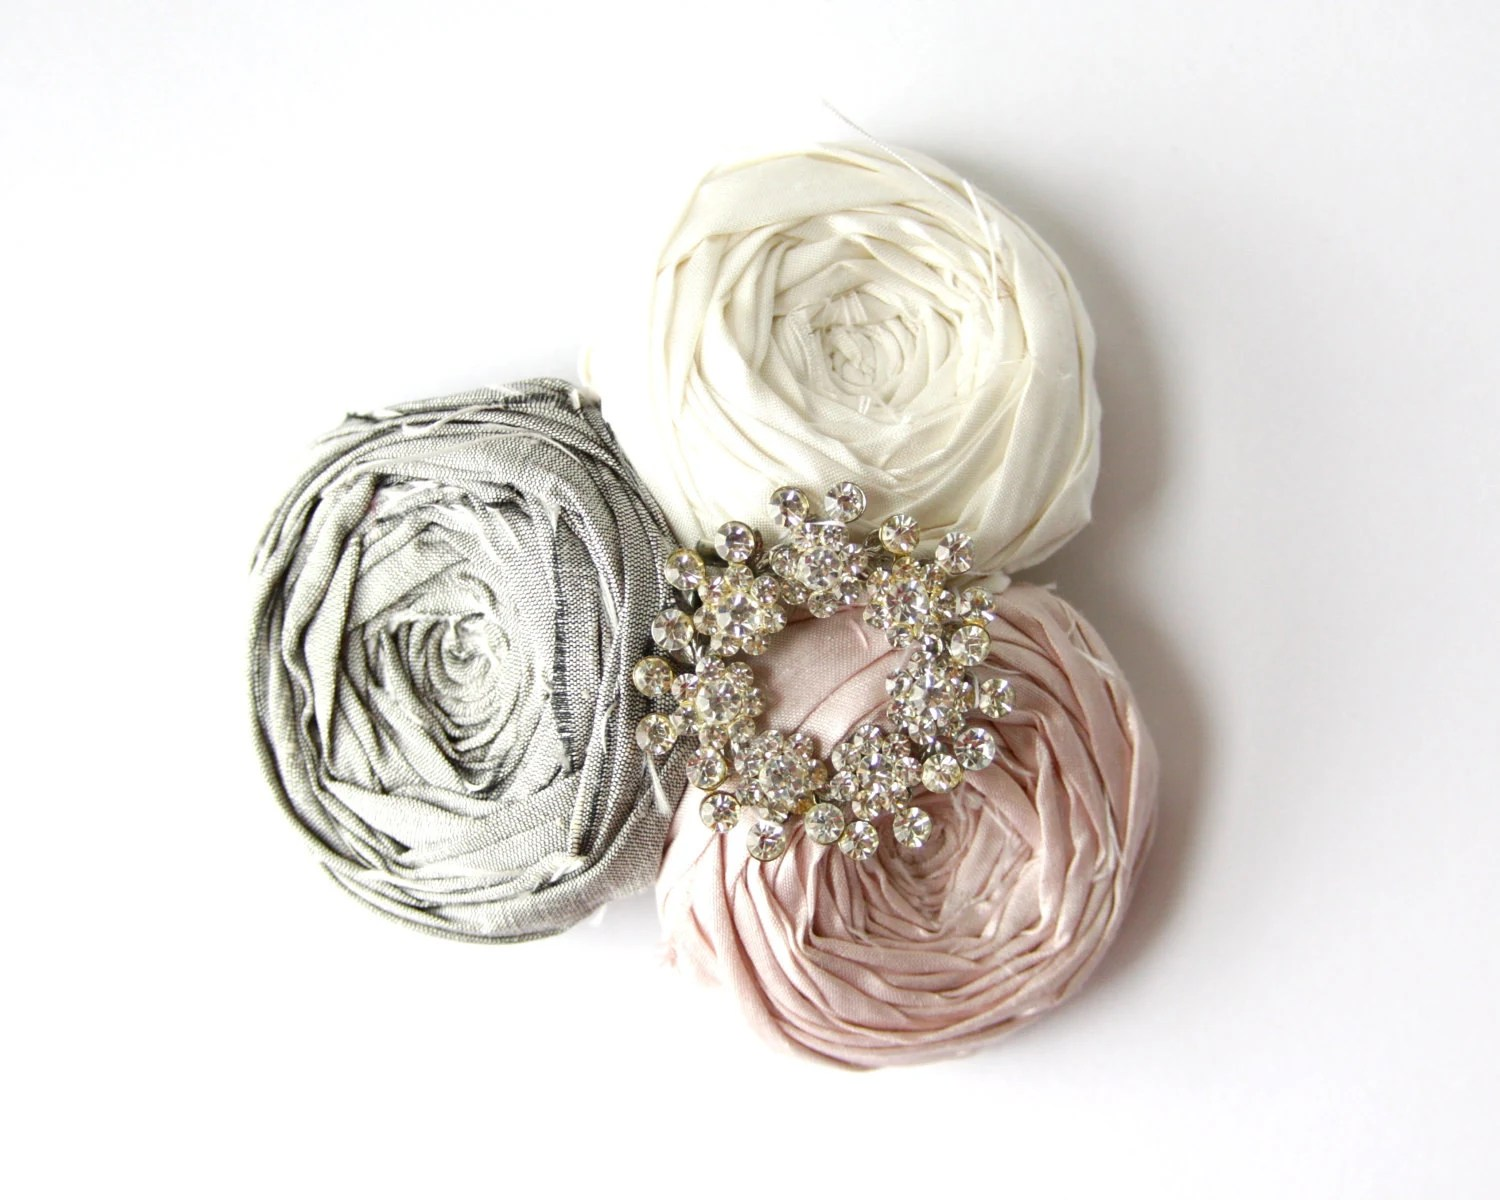 Rosette Hair Clip Bridal or Just Chic Silk Rosette Flower Hair Clip with Vintage Rhinestone setting Dove Gray White and Pink chic Silk - Brydferth